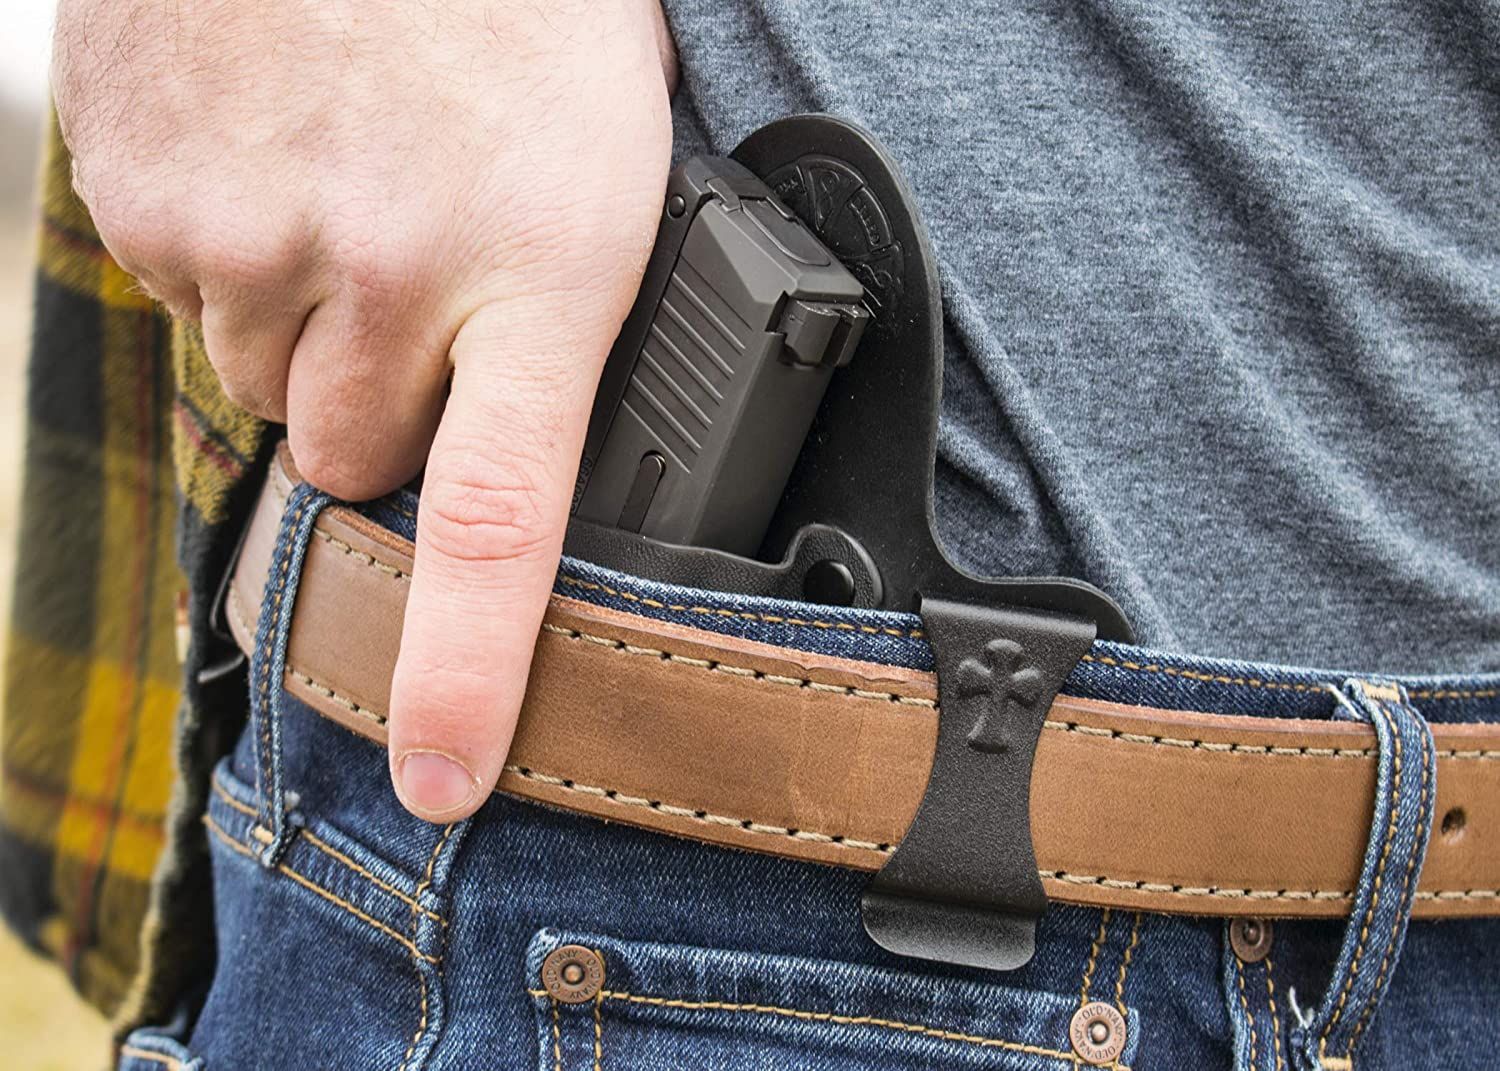 Best Concealed Carry 45 – Top 10 Picks